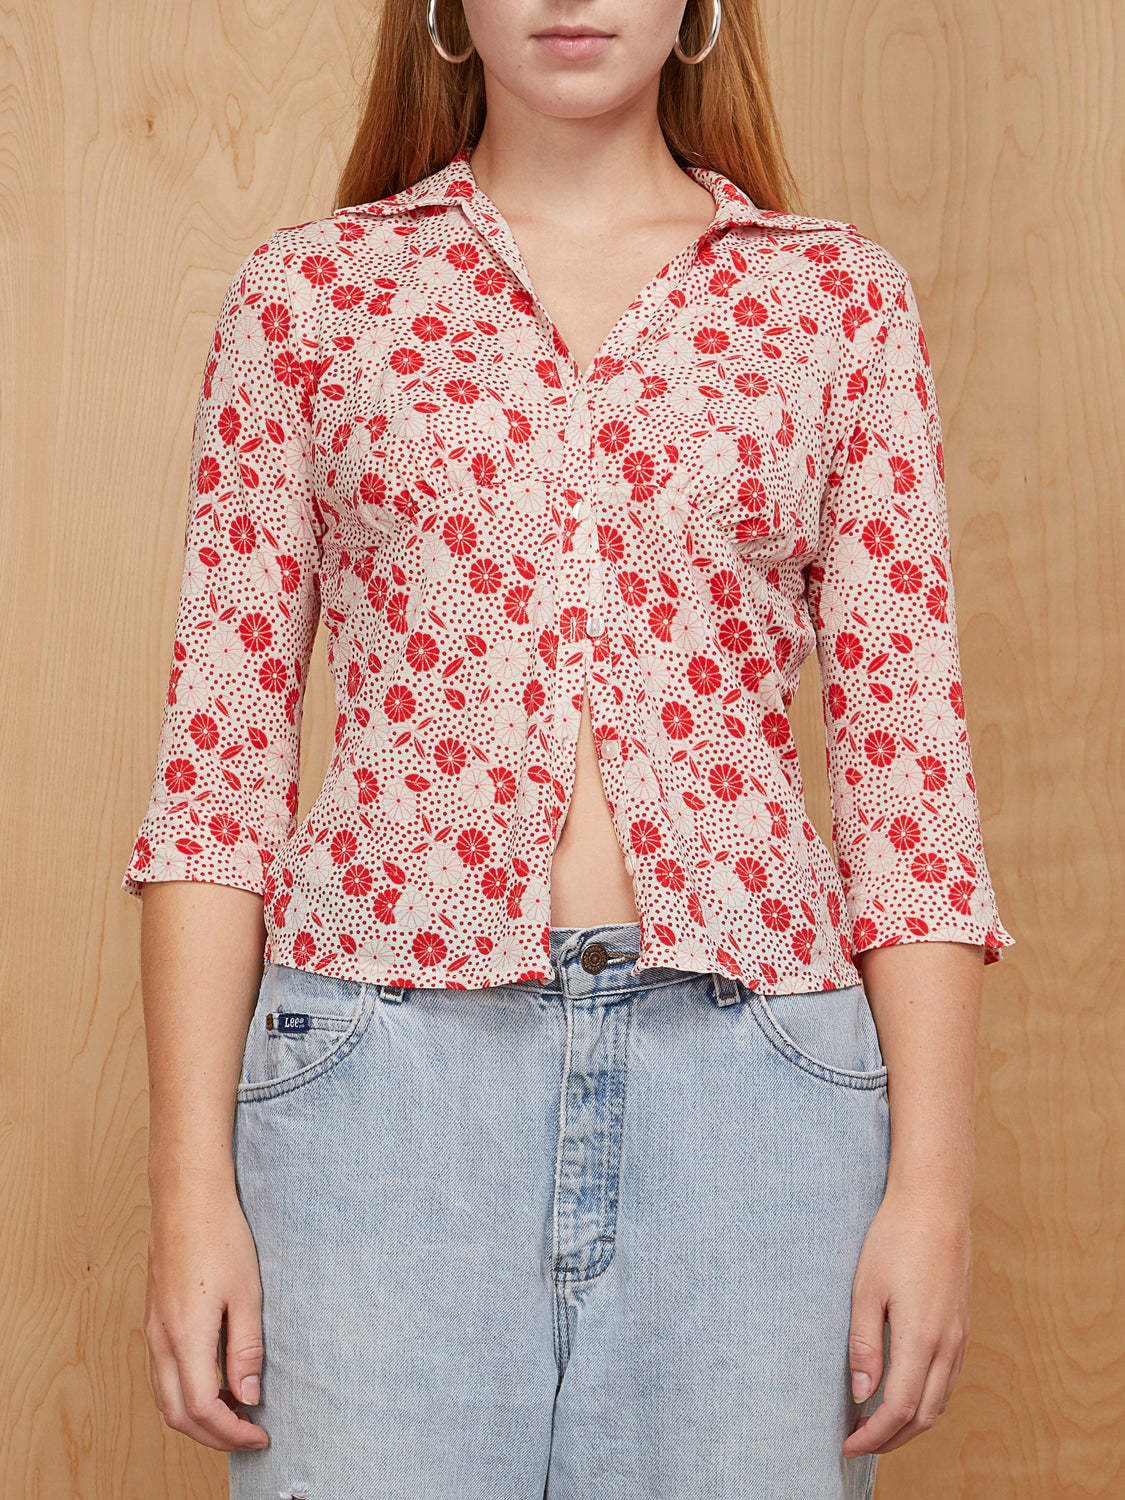 Vintage Red Print Button Up Top